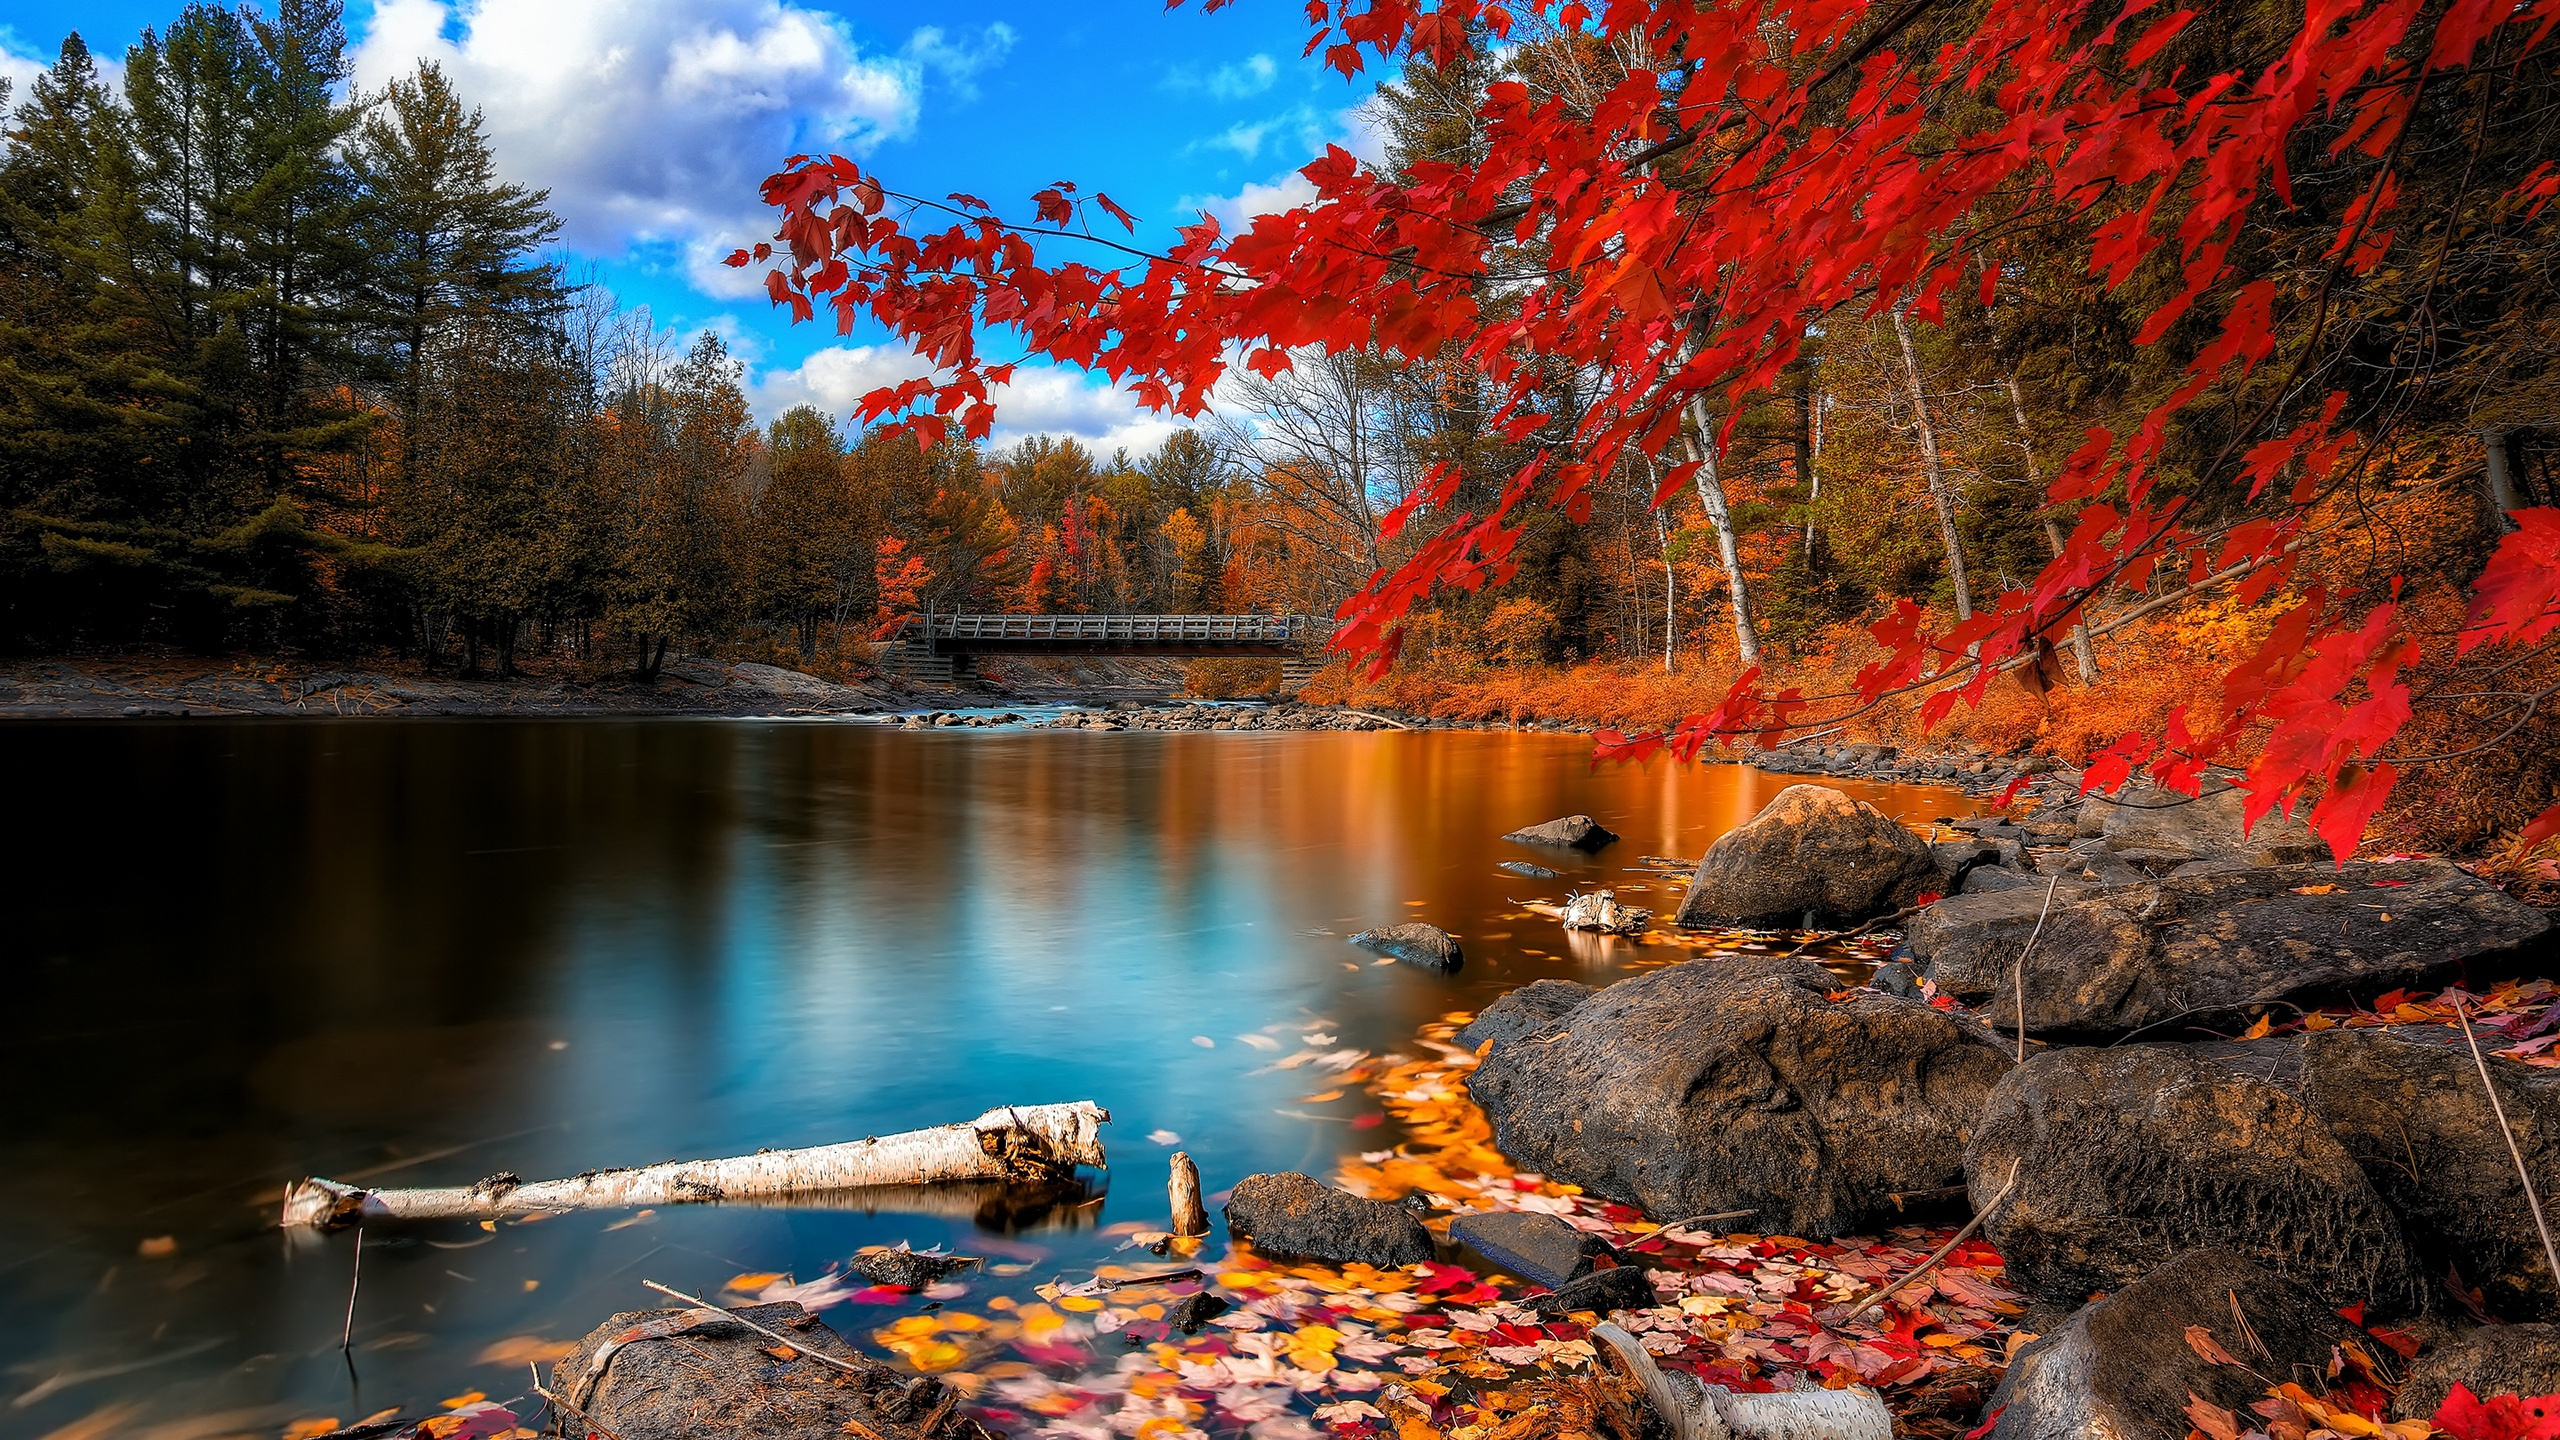 Wallpaper Autumn River Wooden Bridge Woods And Red Leaves